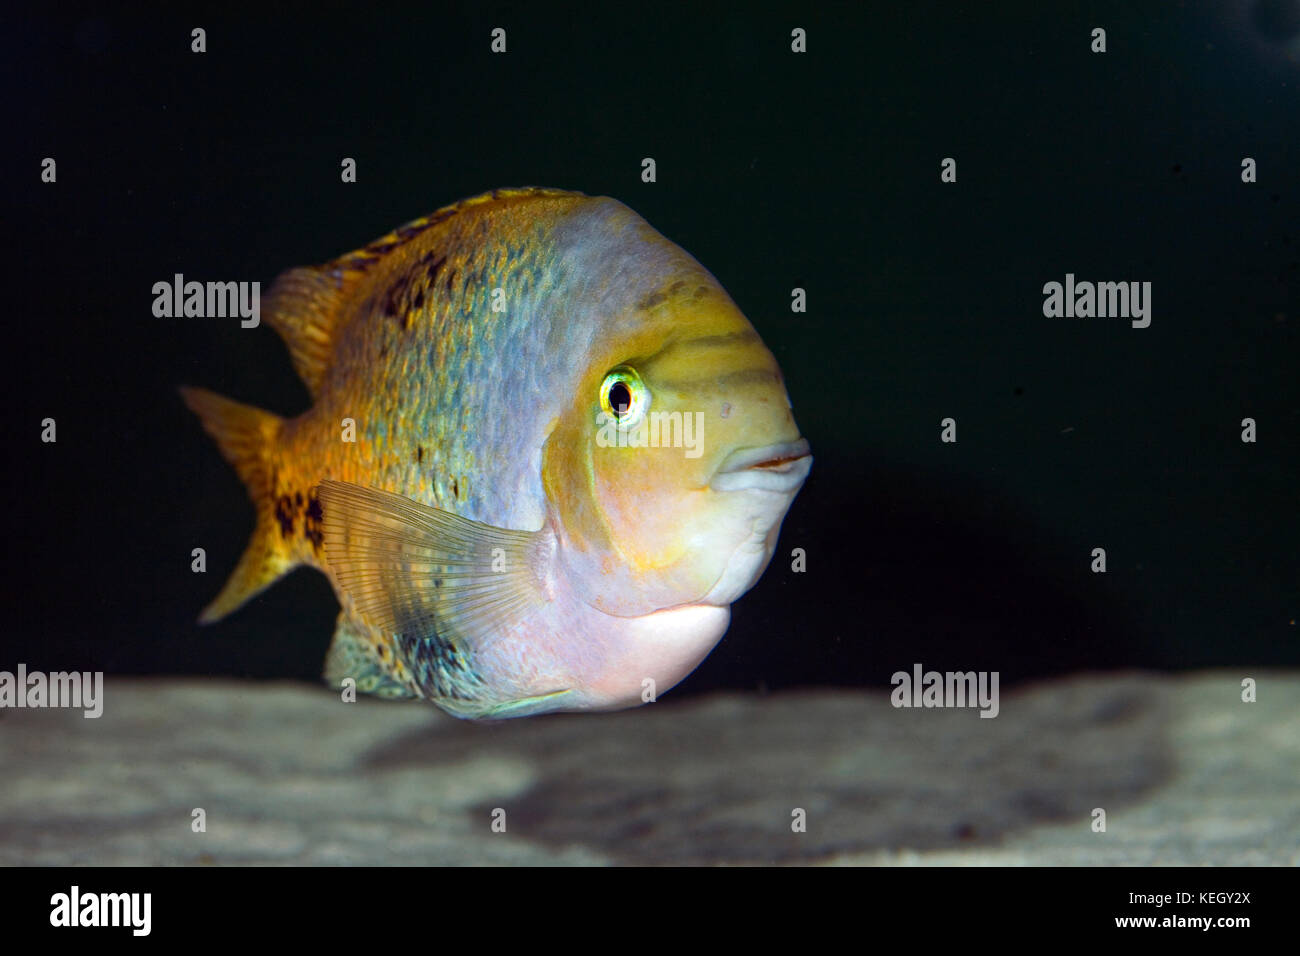 The Quetzal cichlid, Vieja melanura. Male on breeding coloration. Aquarium. Portugal - Stock Image